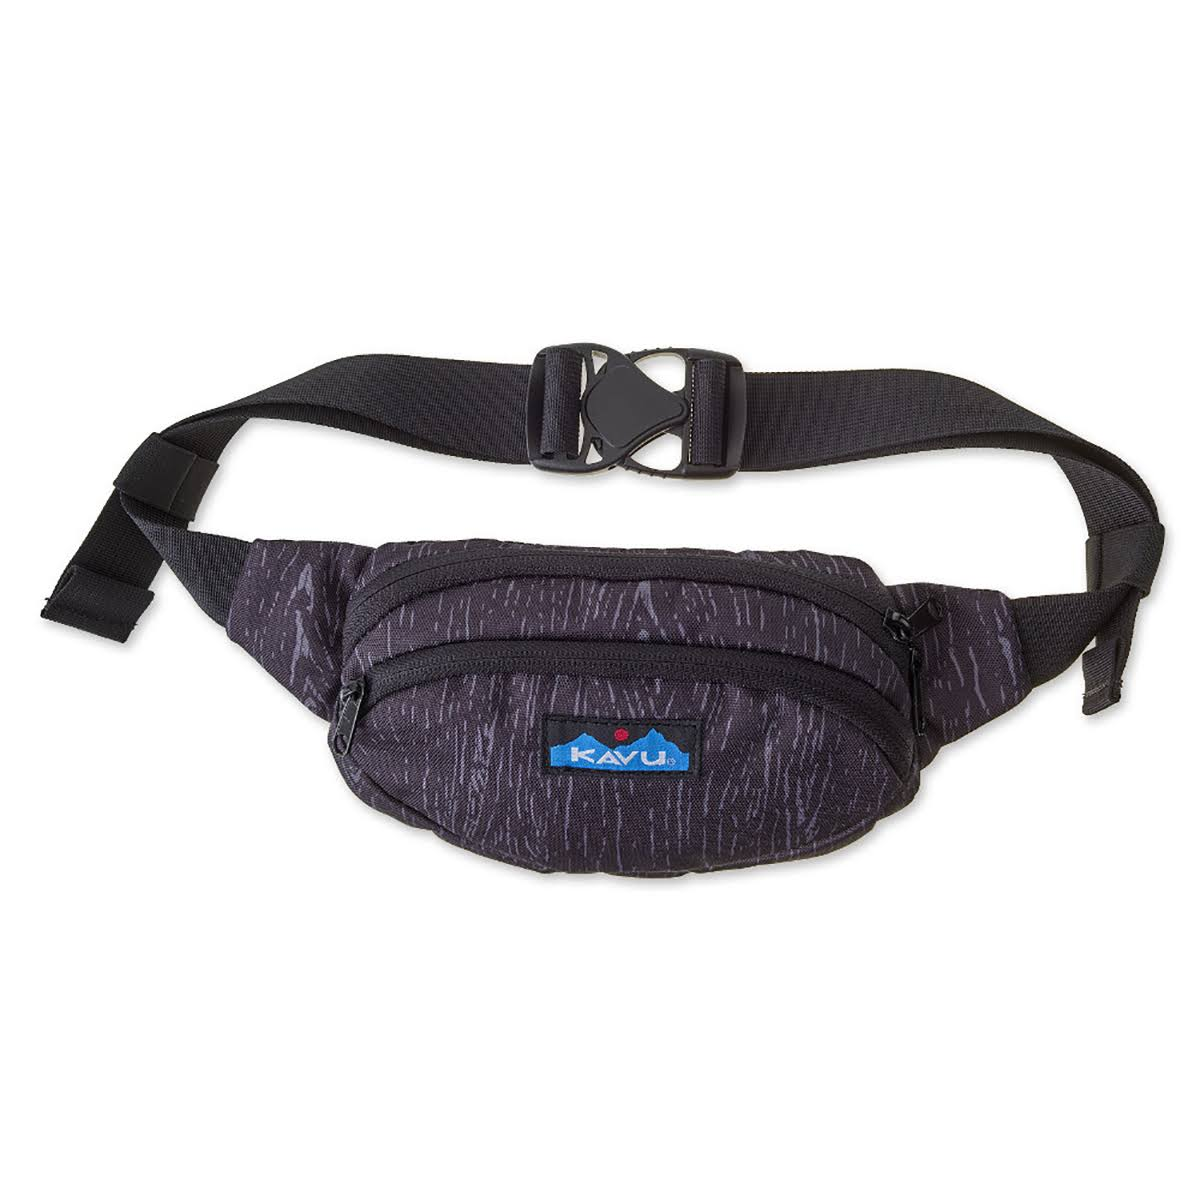 Kavu Women's Spectator Waist Pack - Black Oak